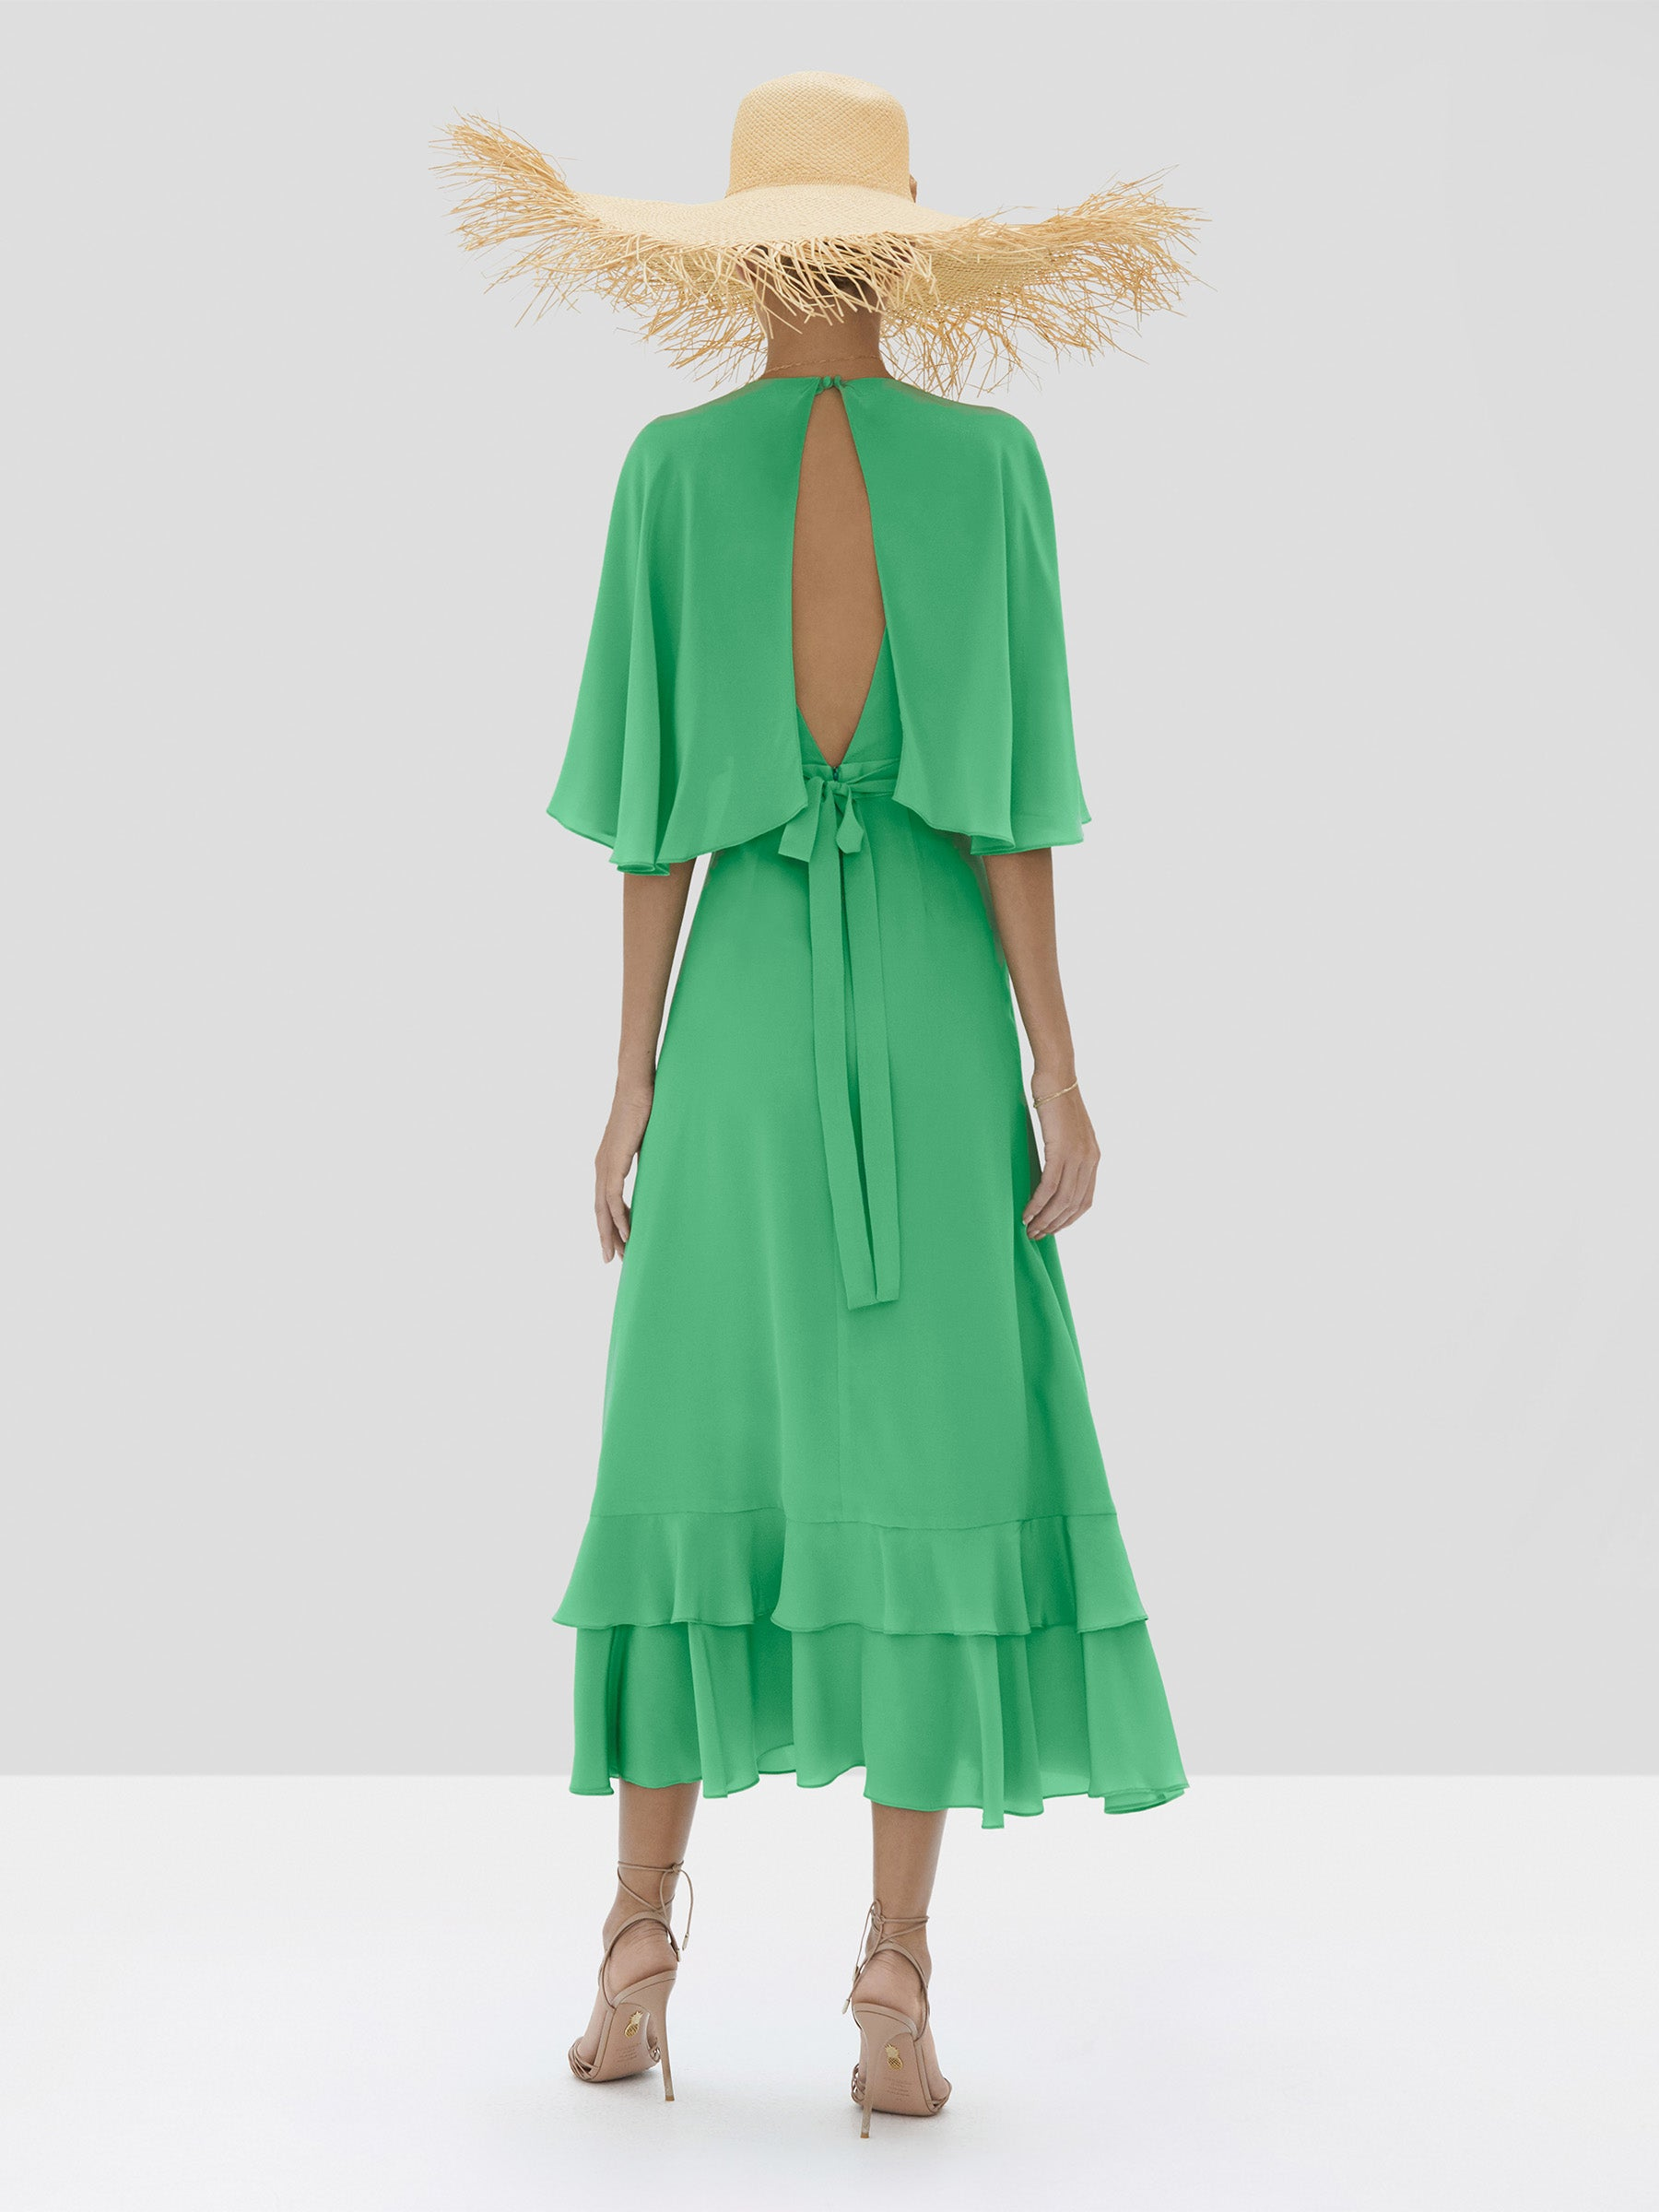 Alexis Cateline Dress in Kelly Green from Spring Summer 2020 Collection - Rear View